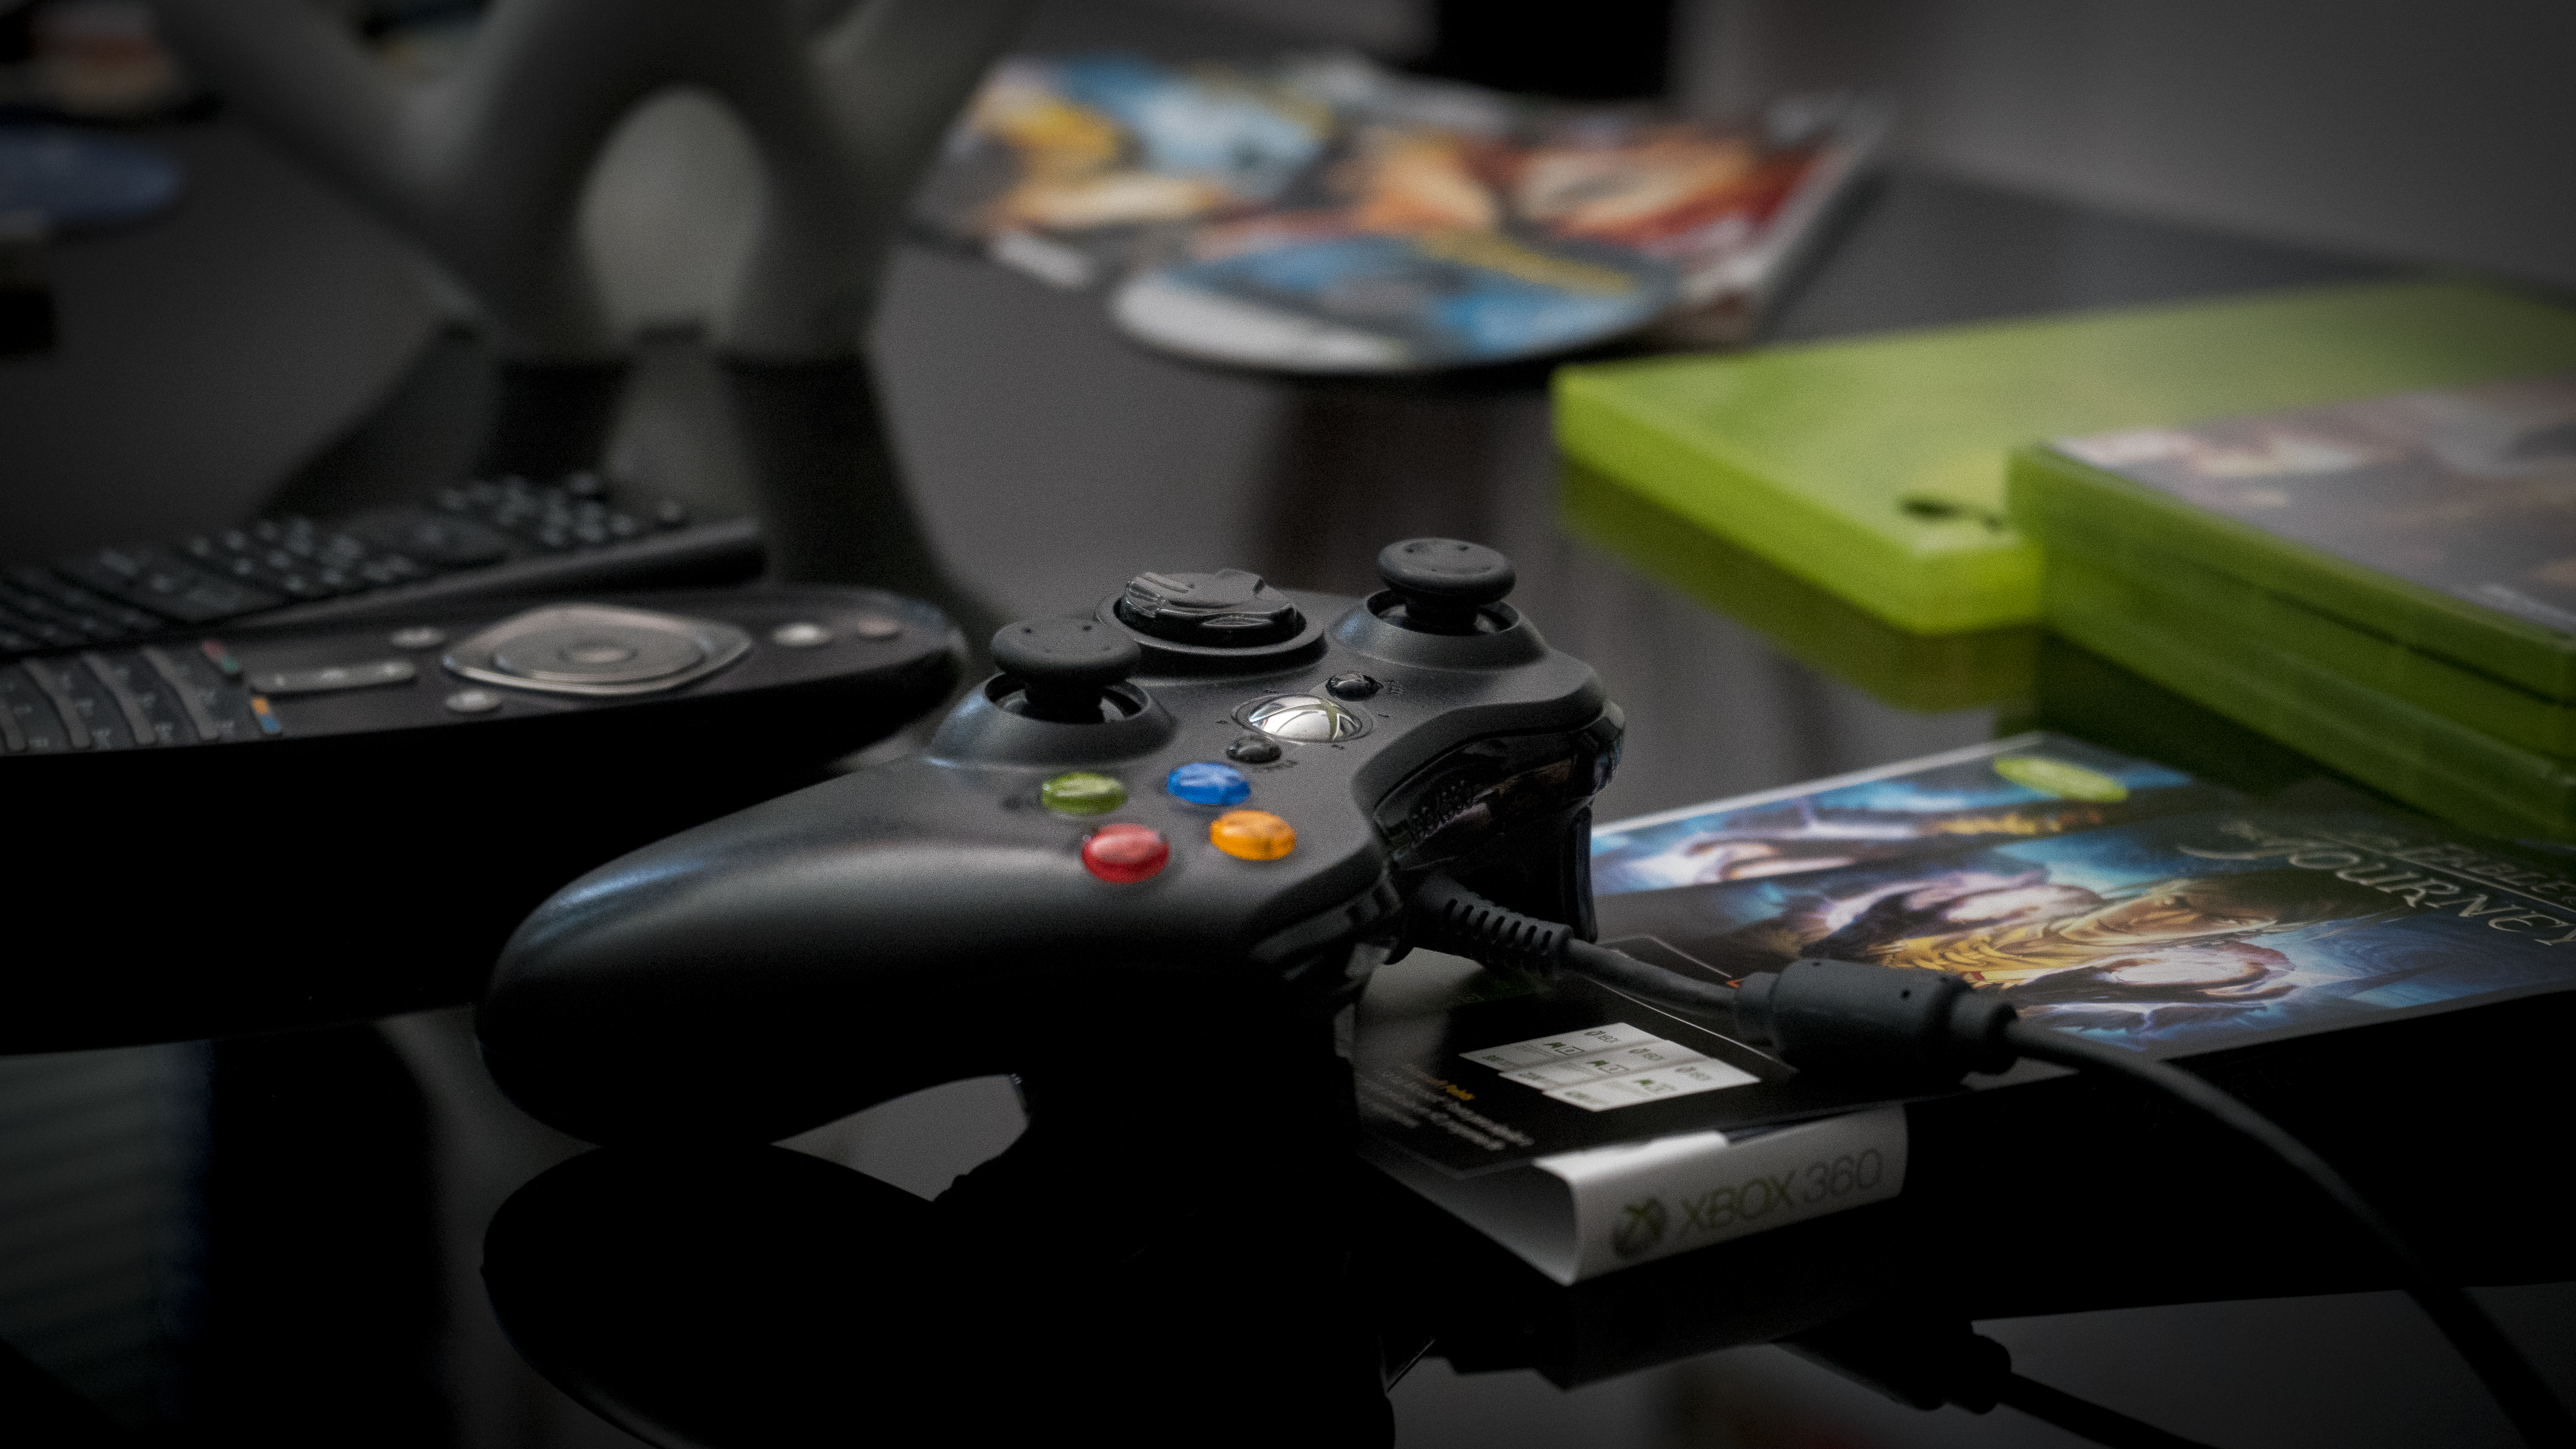 New Xbox: Release Date, Price, Specs, & Games for Microsoft New